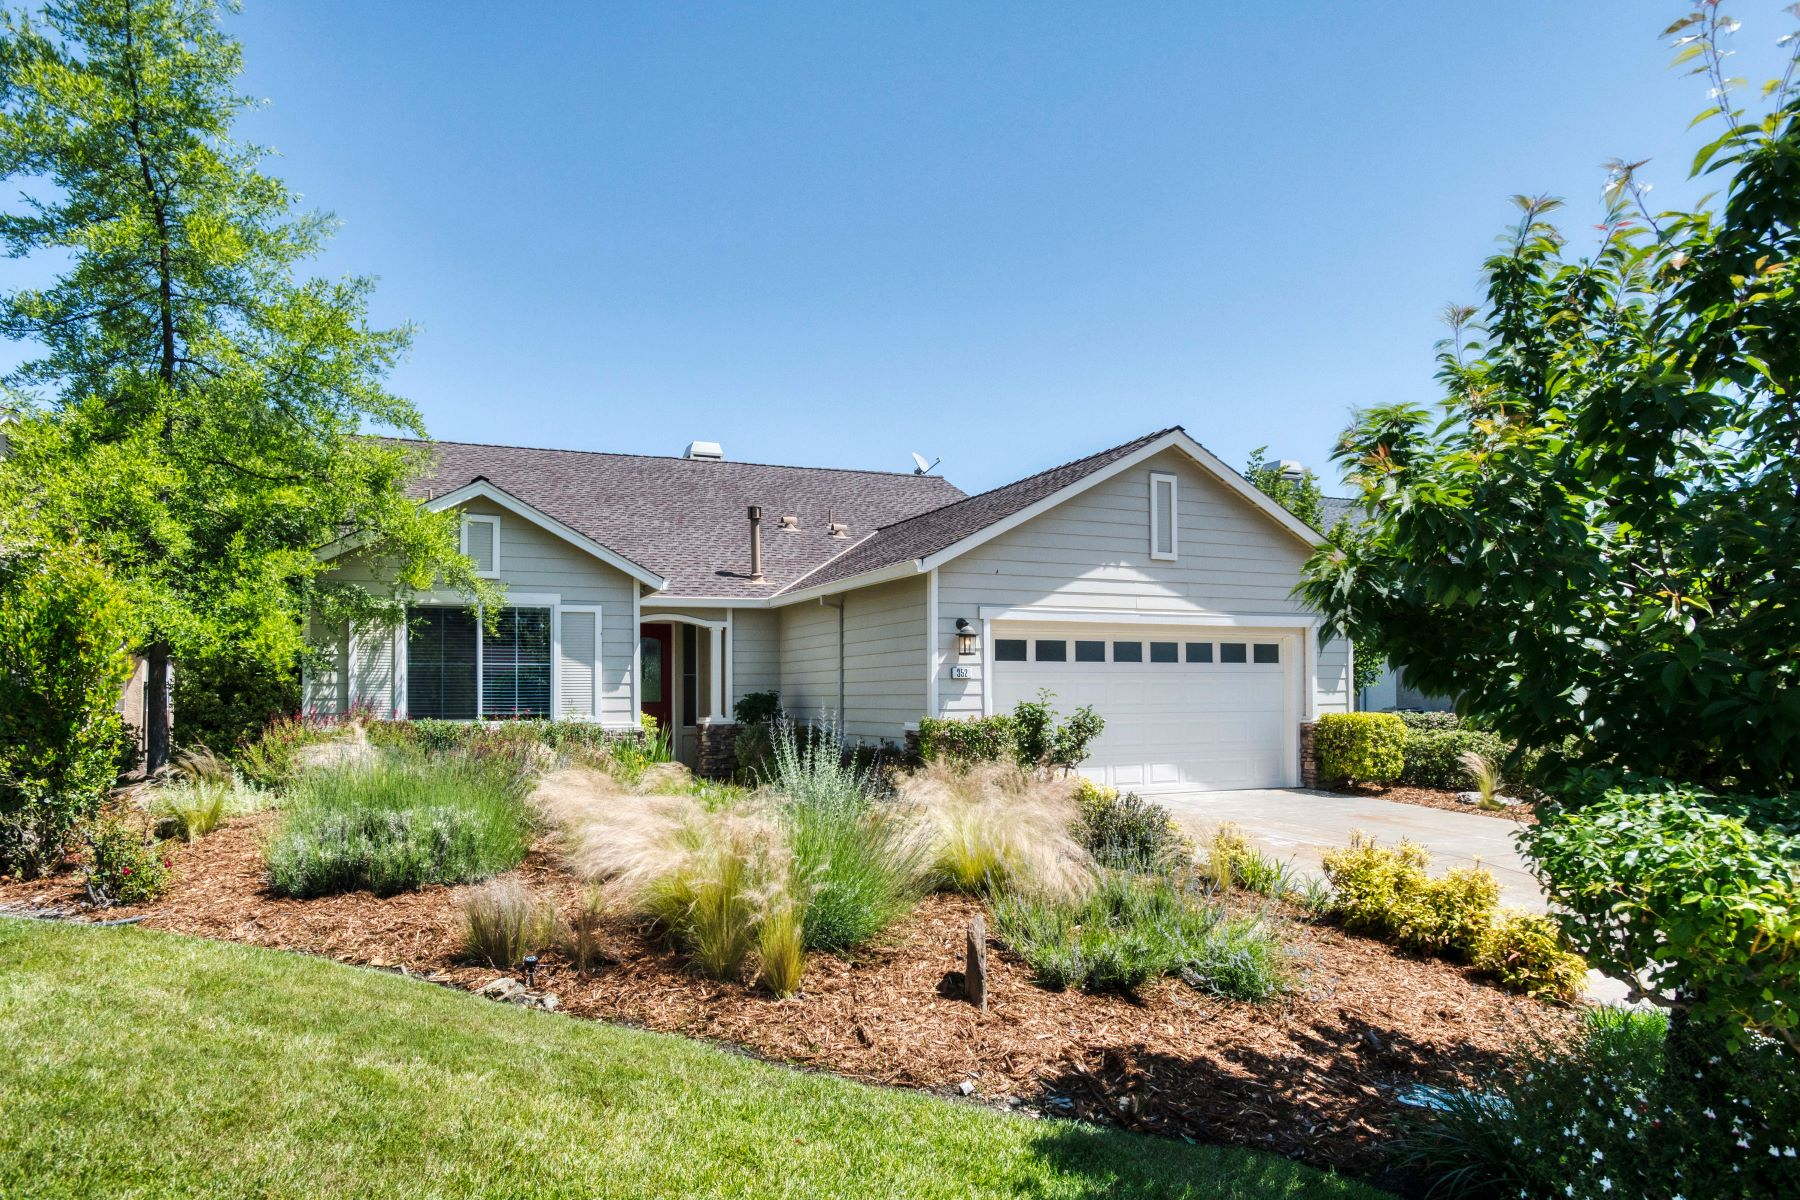 Single Family Homes for Sale at Spectacular Home in Country Club Setting 352 Mitchell Lake Lane Copperopolis, California 95228 United States